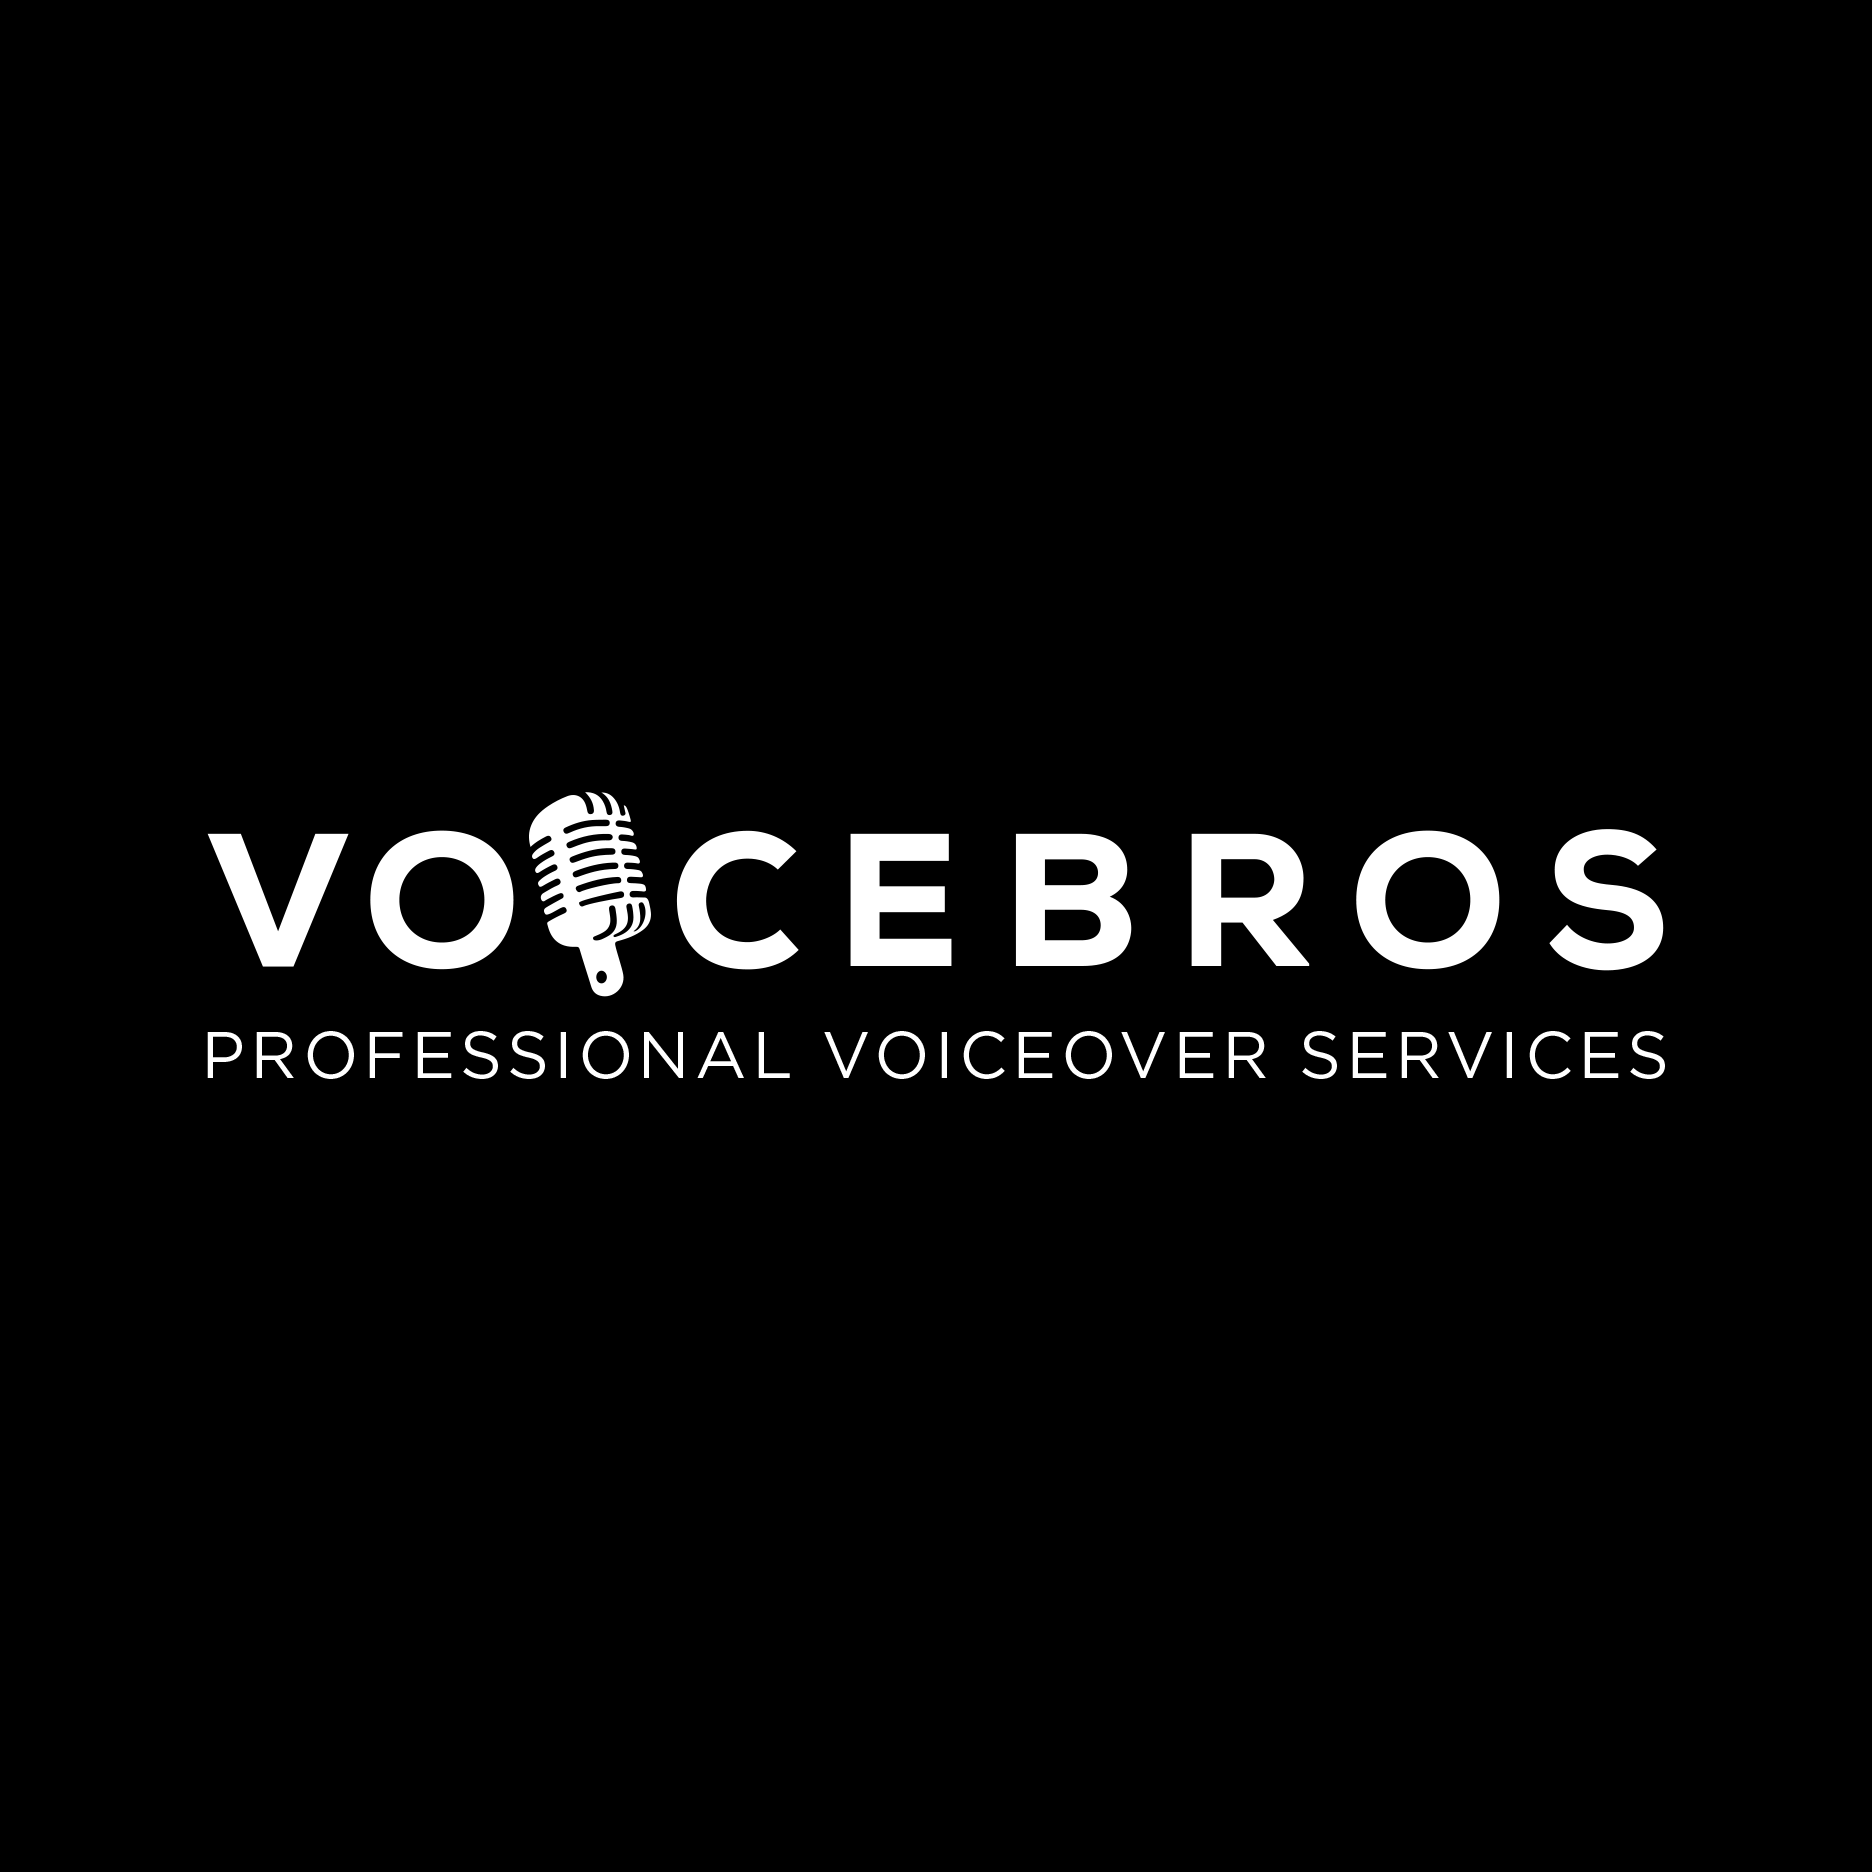 Marco Tolentino is a voice over actor